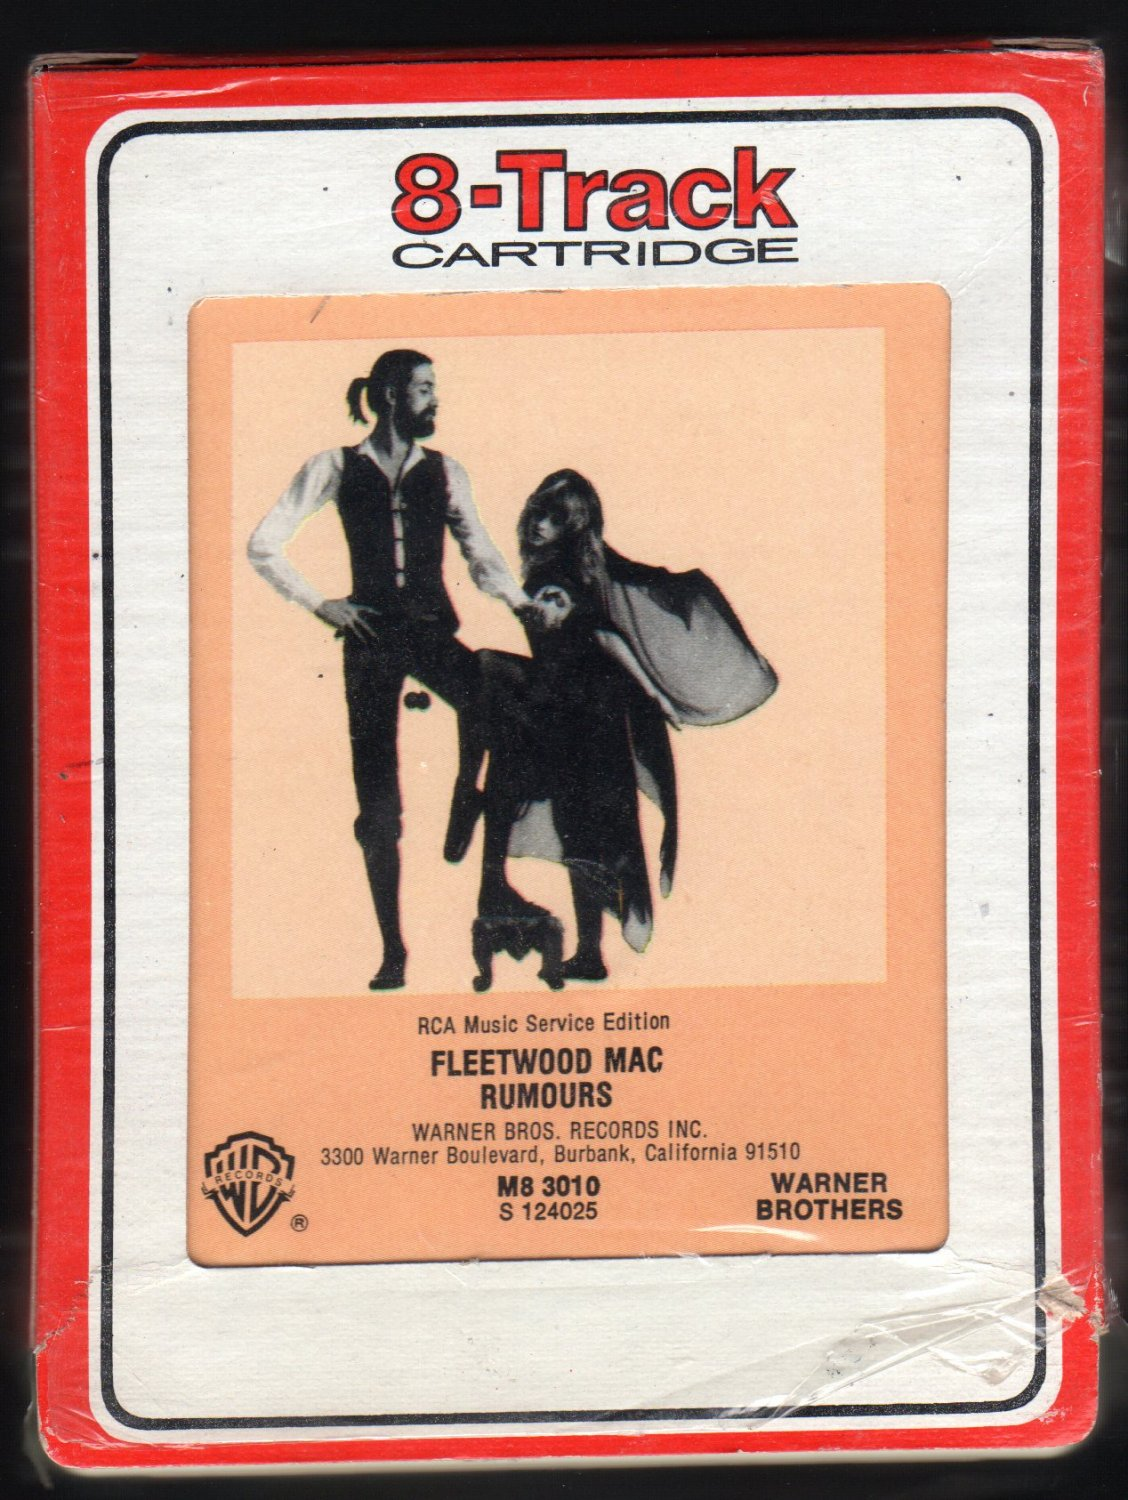 Fleetwood Mac - Rumours 1977 RCA WB A42 8-TRACK TAPE